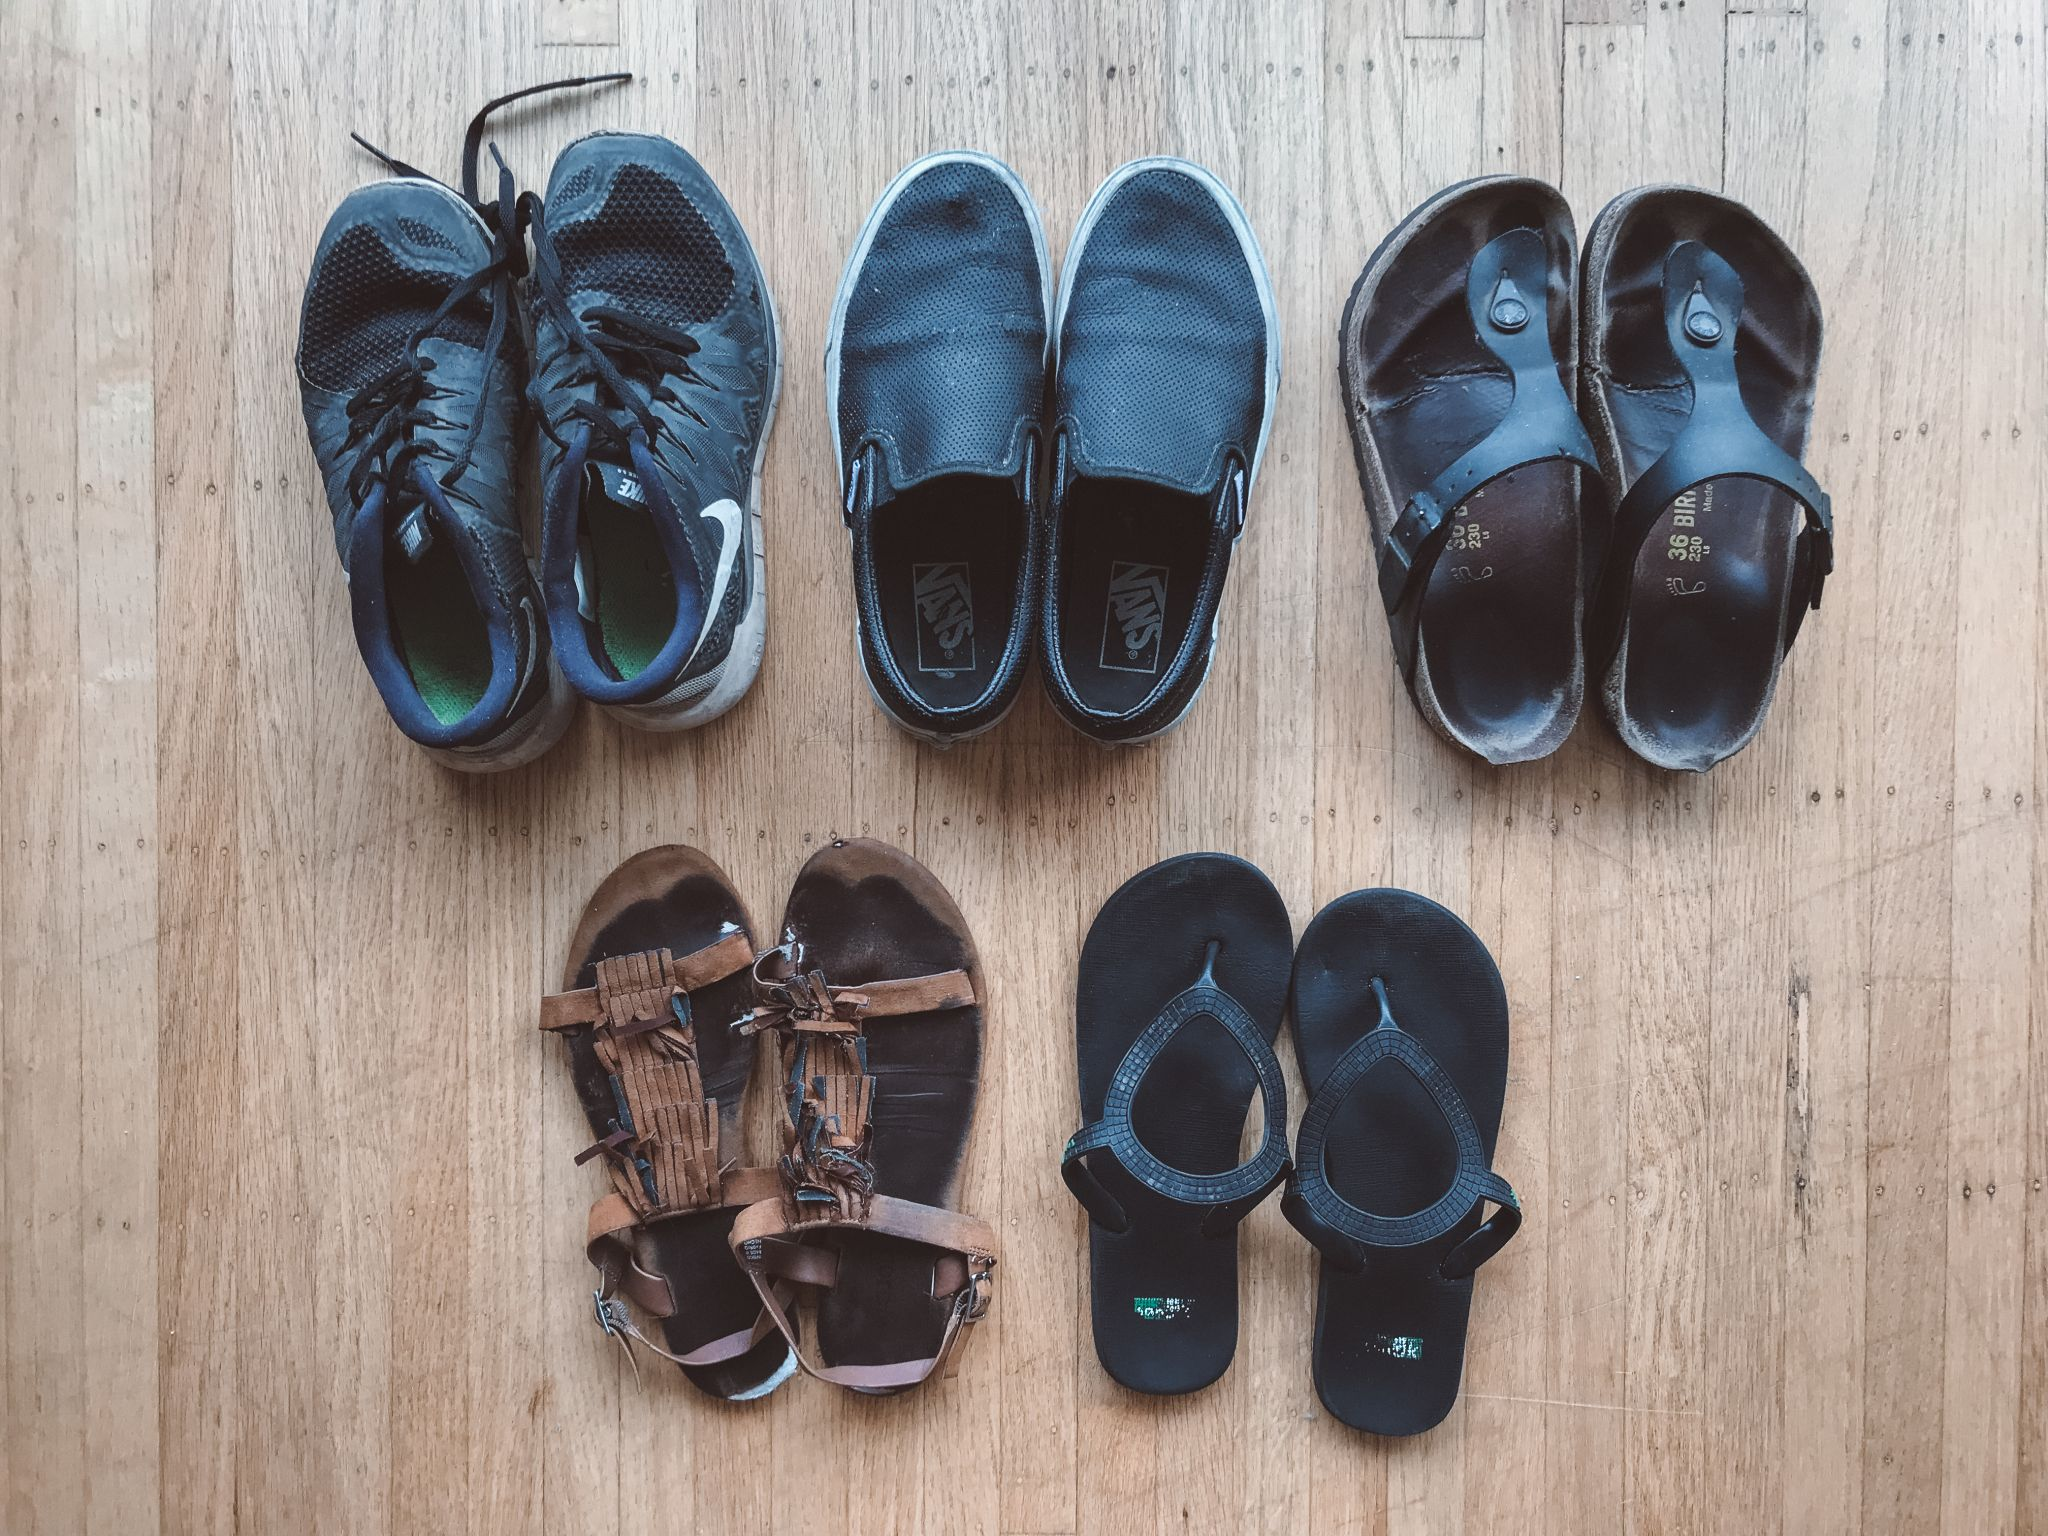 jana meerman packing flatlay shoes